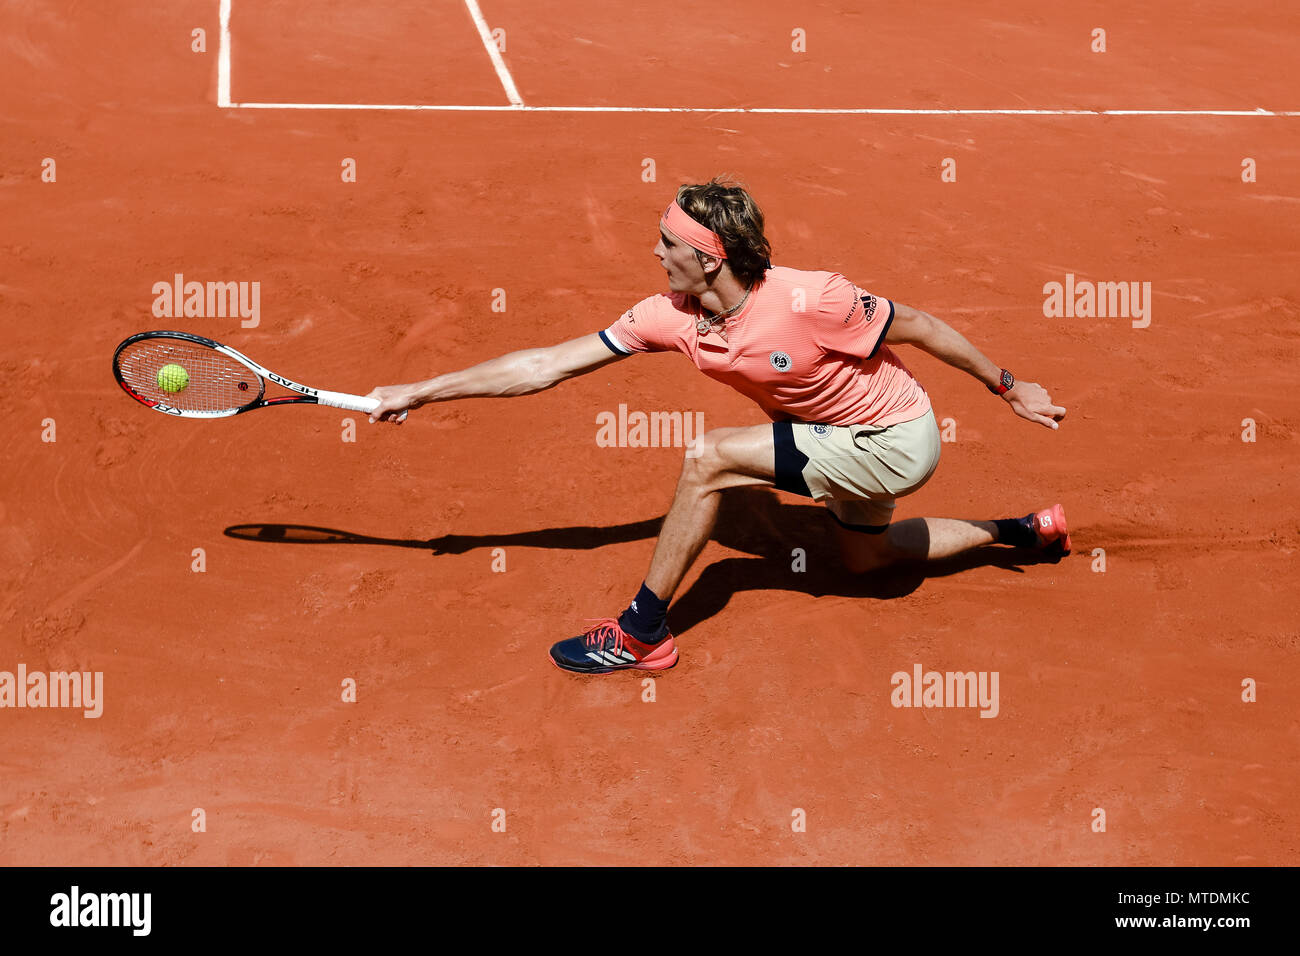 Paris, France. 28th May, 2018. Alexander Zverev of Germany during his second singles match at Day 4 at the 2018 French Open at Roland Garros. Credit: Frank Molter/Alamy Live News Stock Photo